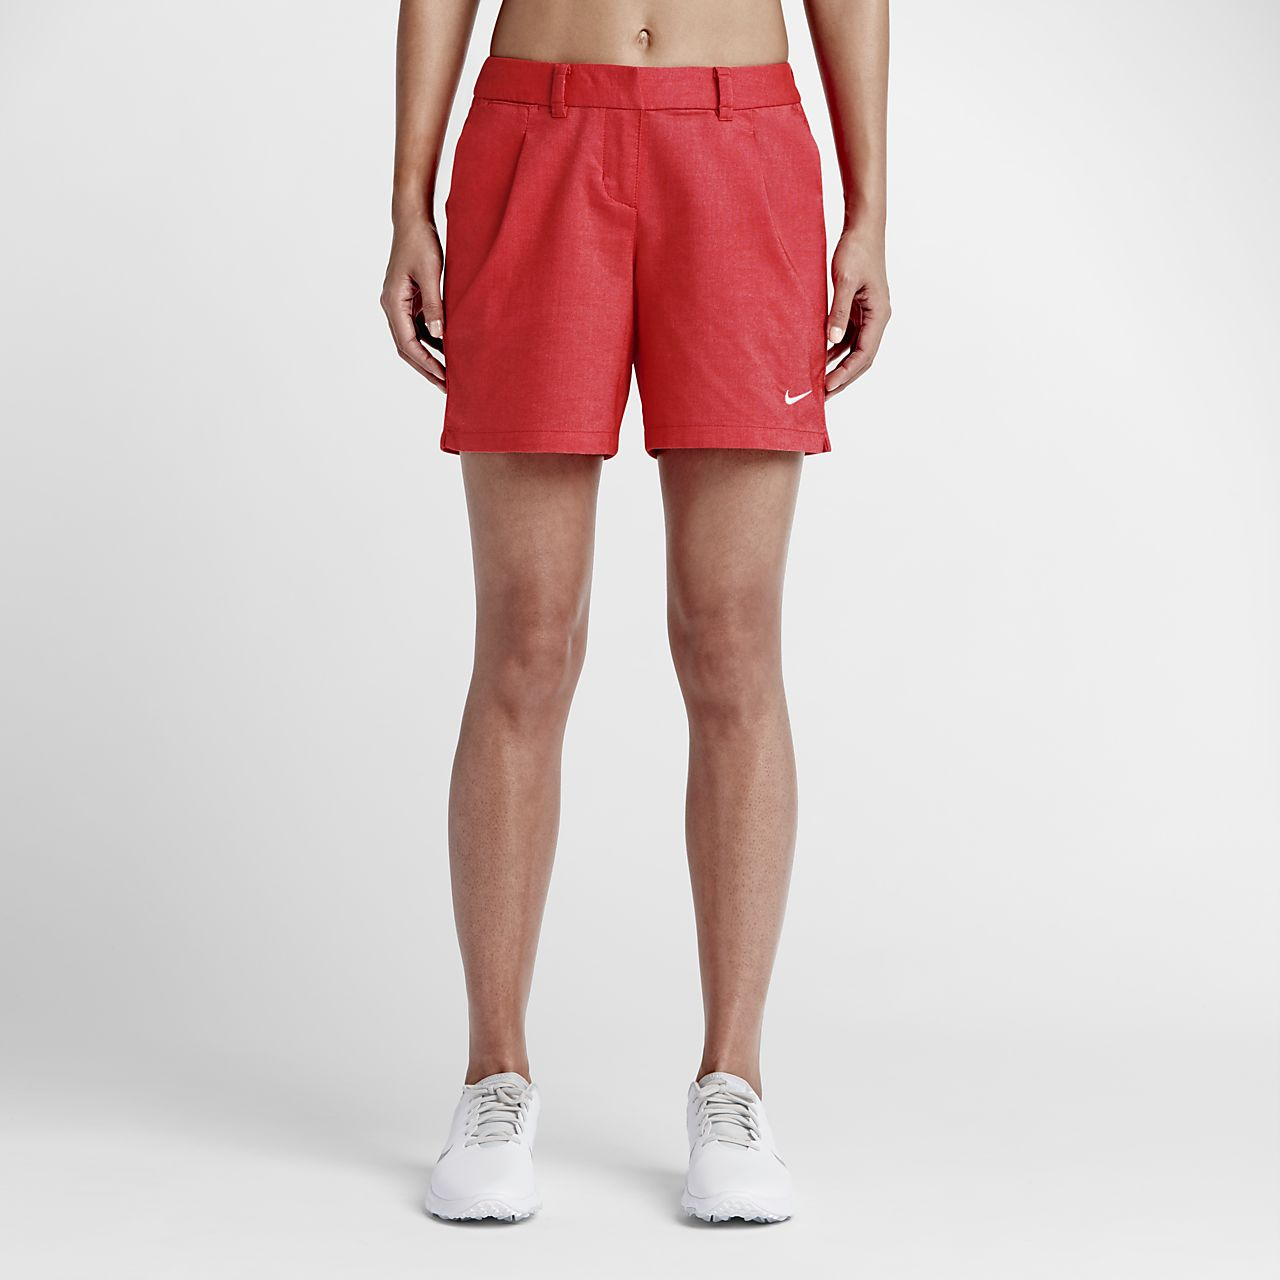 ... Nike Oxford Women's Golf Shorts